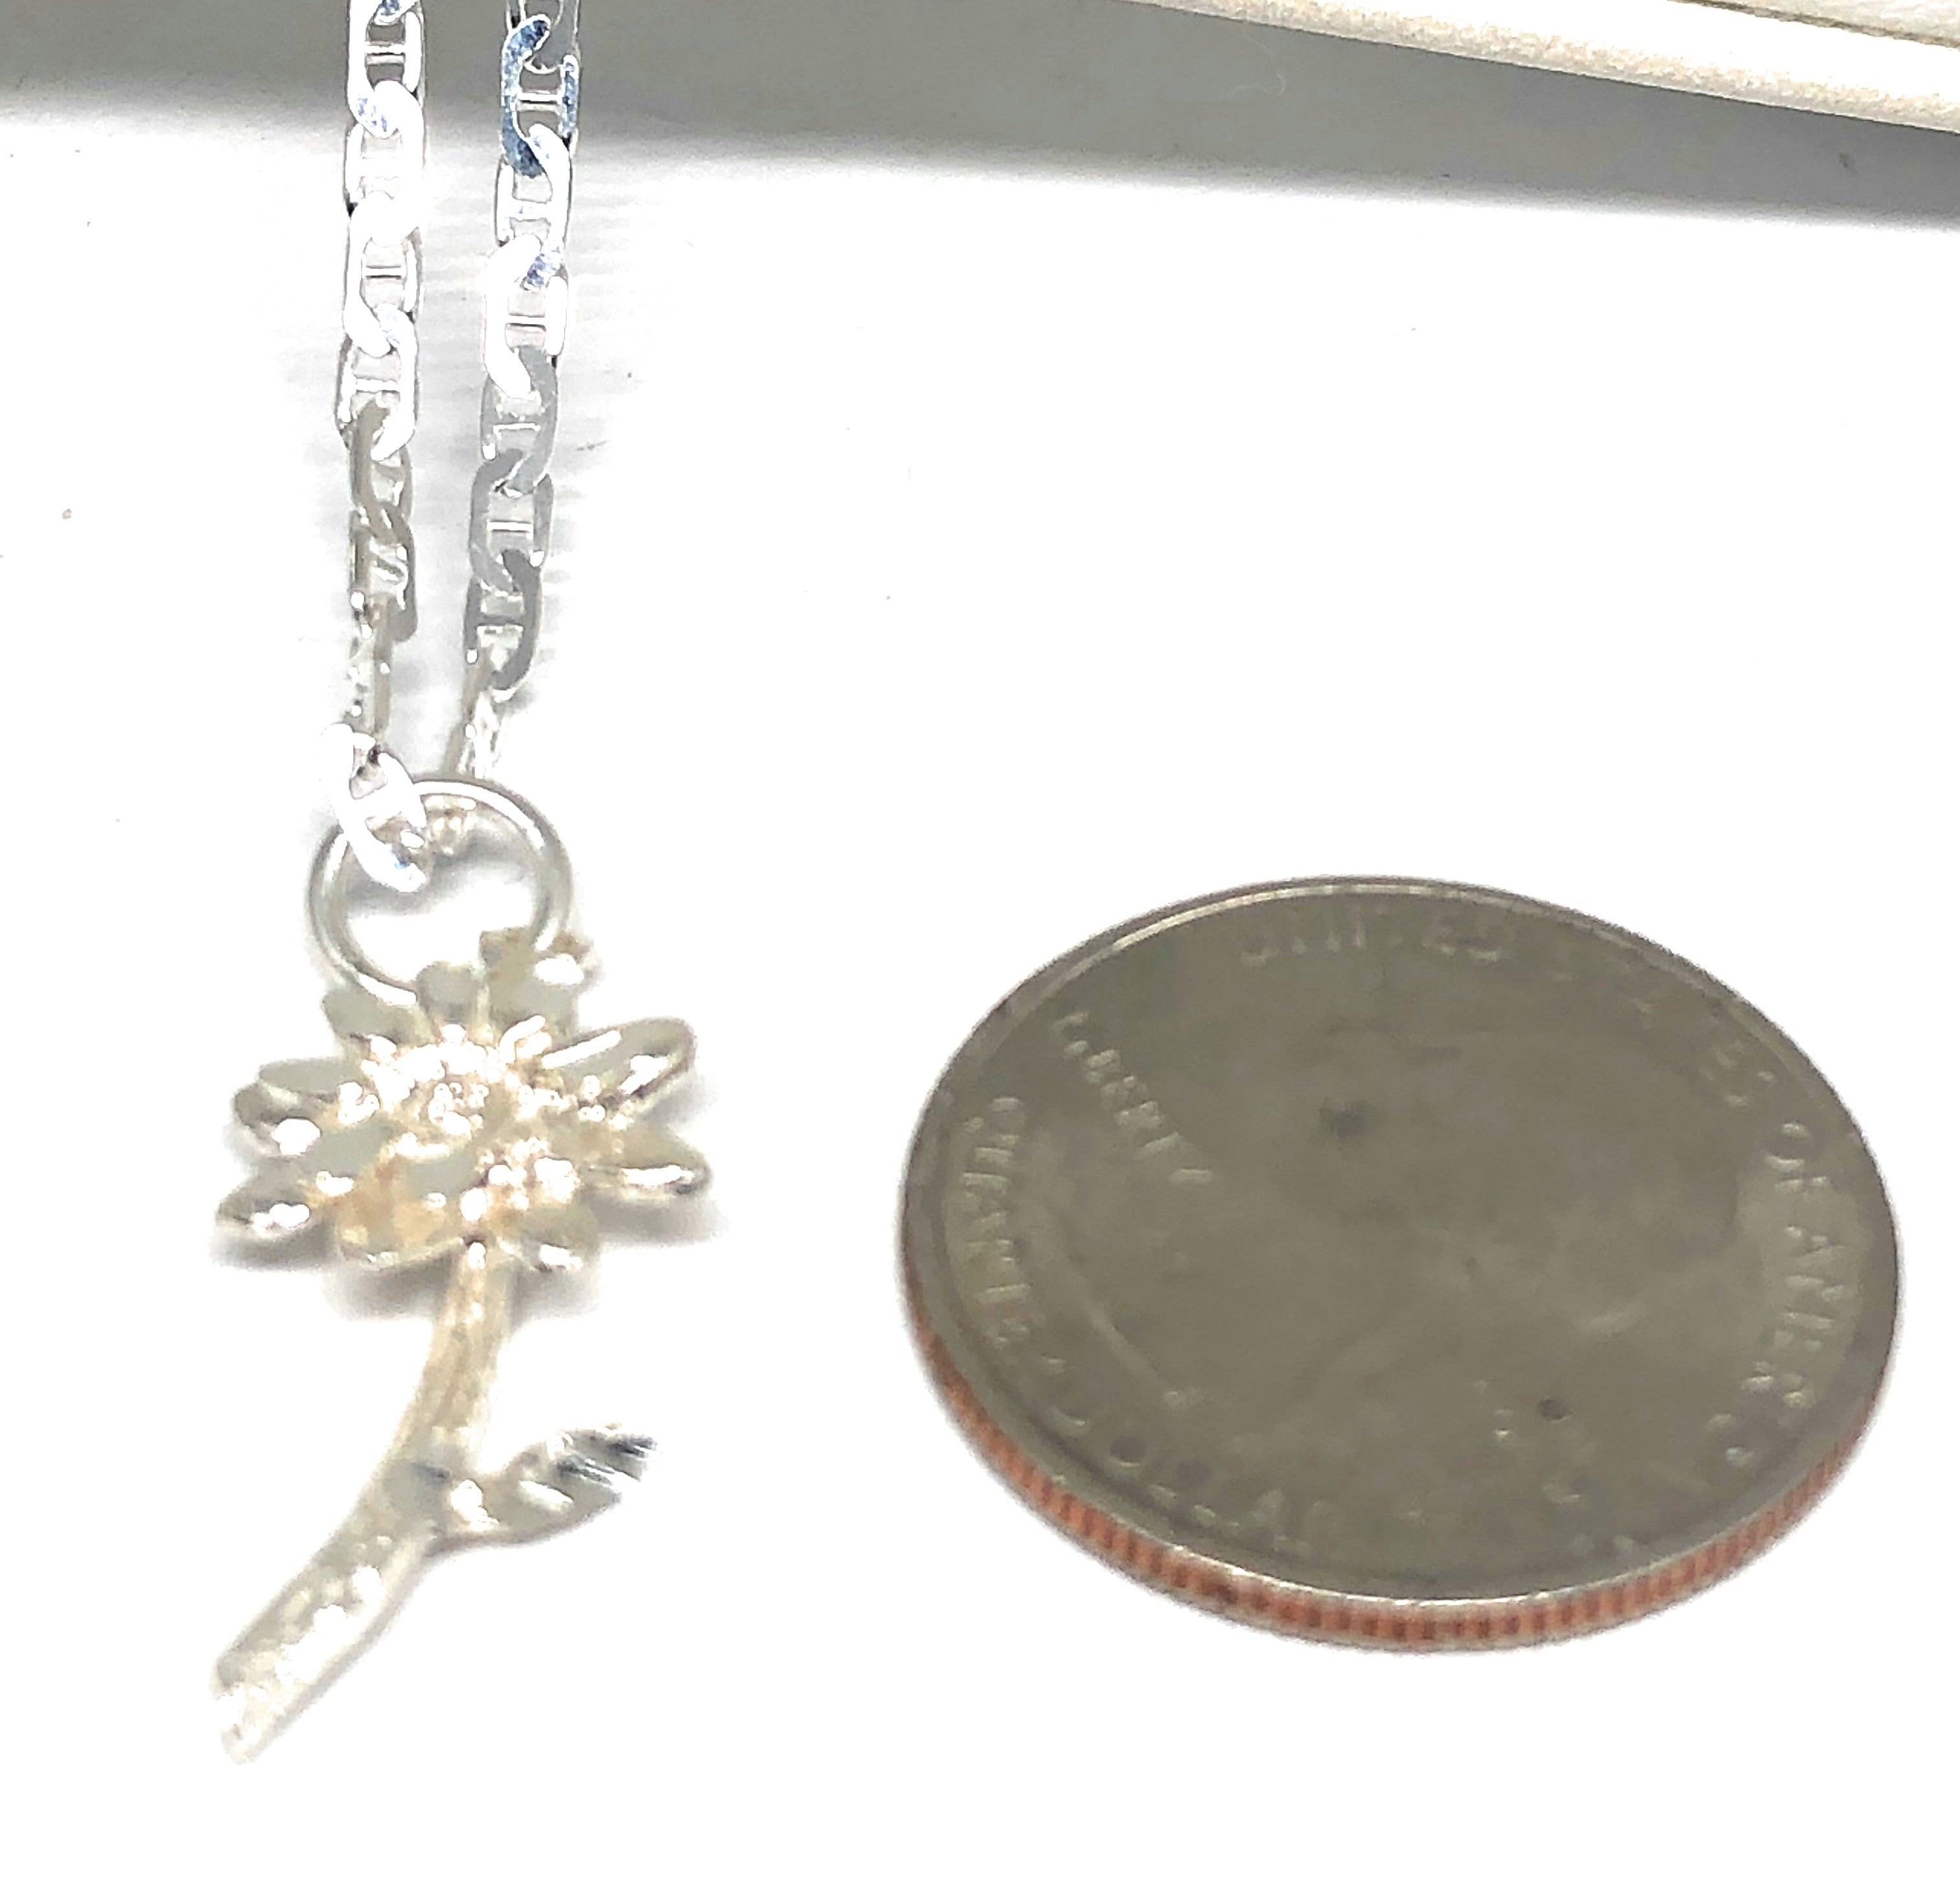 .925 Silver Flower Pendant Necklace with Chain Options